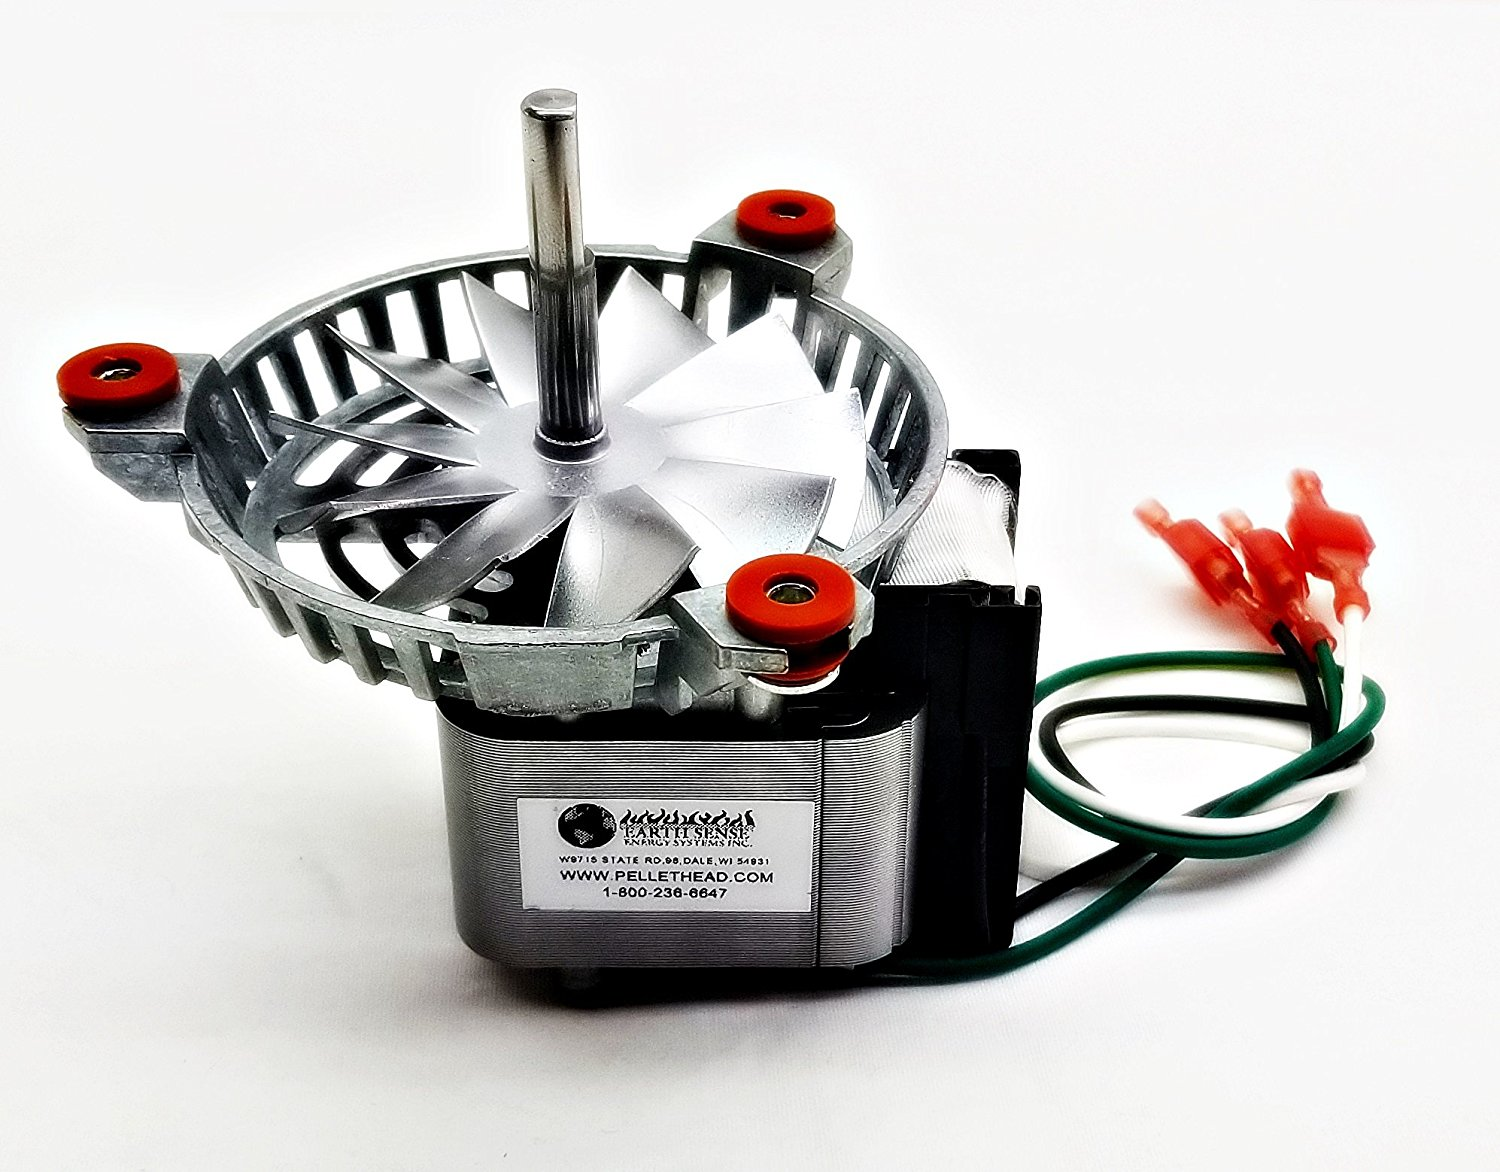 Harman Combustion Exhaust Fan Motor for Pellet Stoves #3-21-08639! by